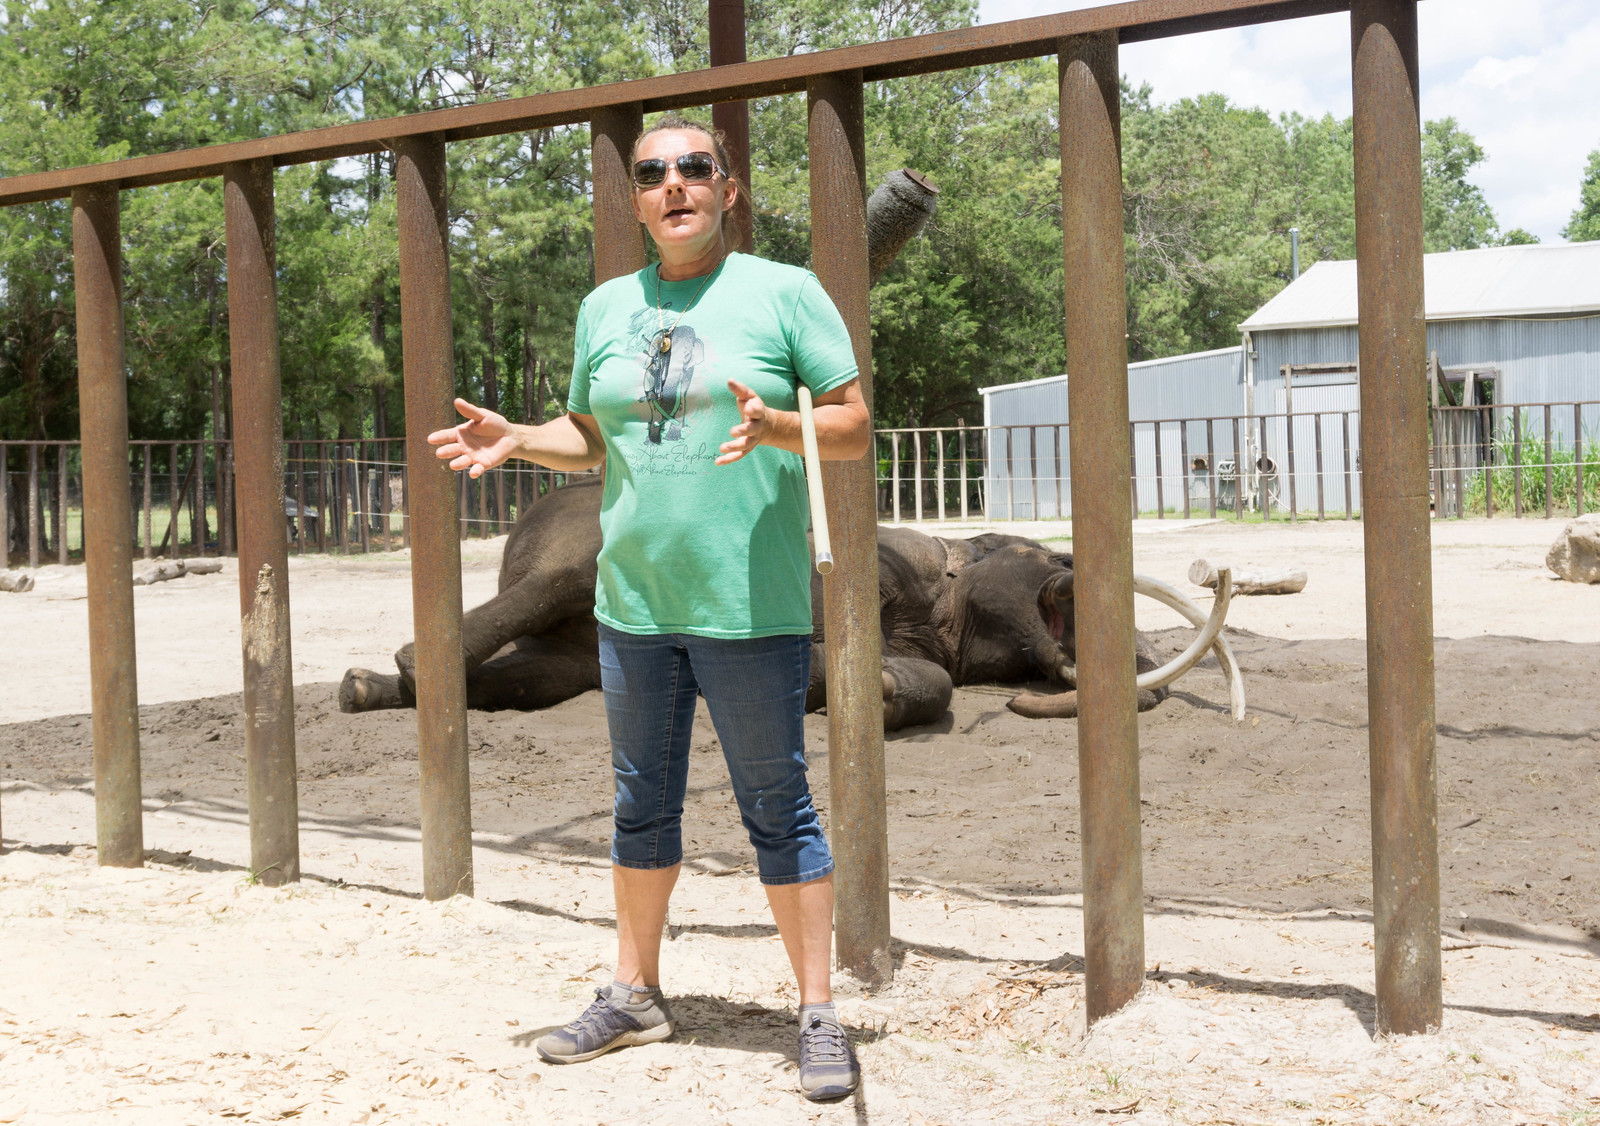 Patricia L. Zerbini Owns All About Elephants at Two Tails Ranch, Williston, Fla., April 30, 2017